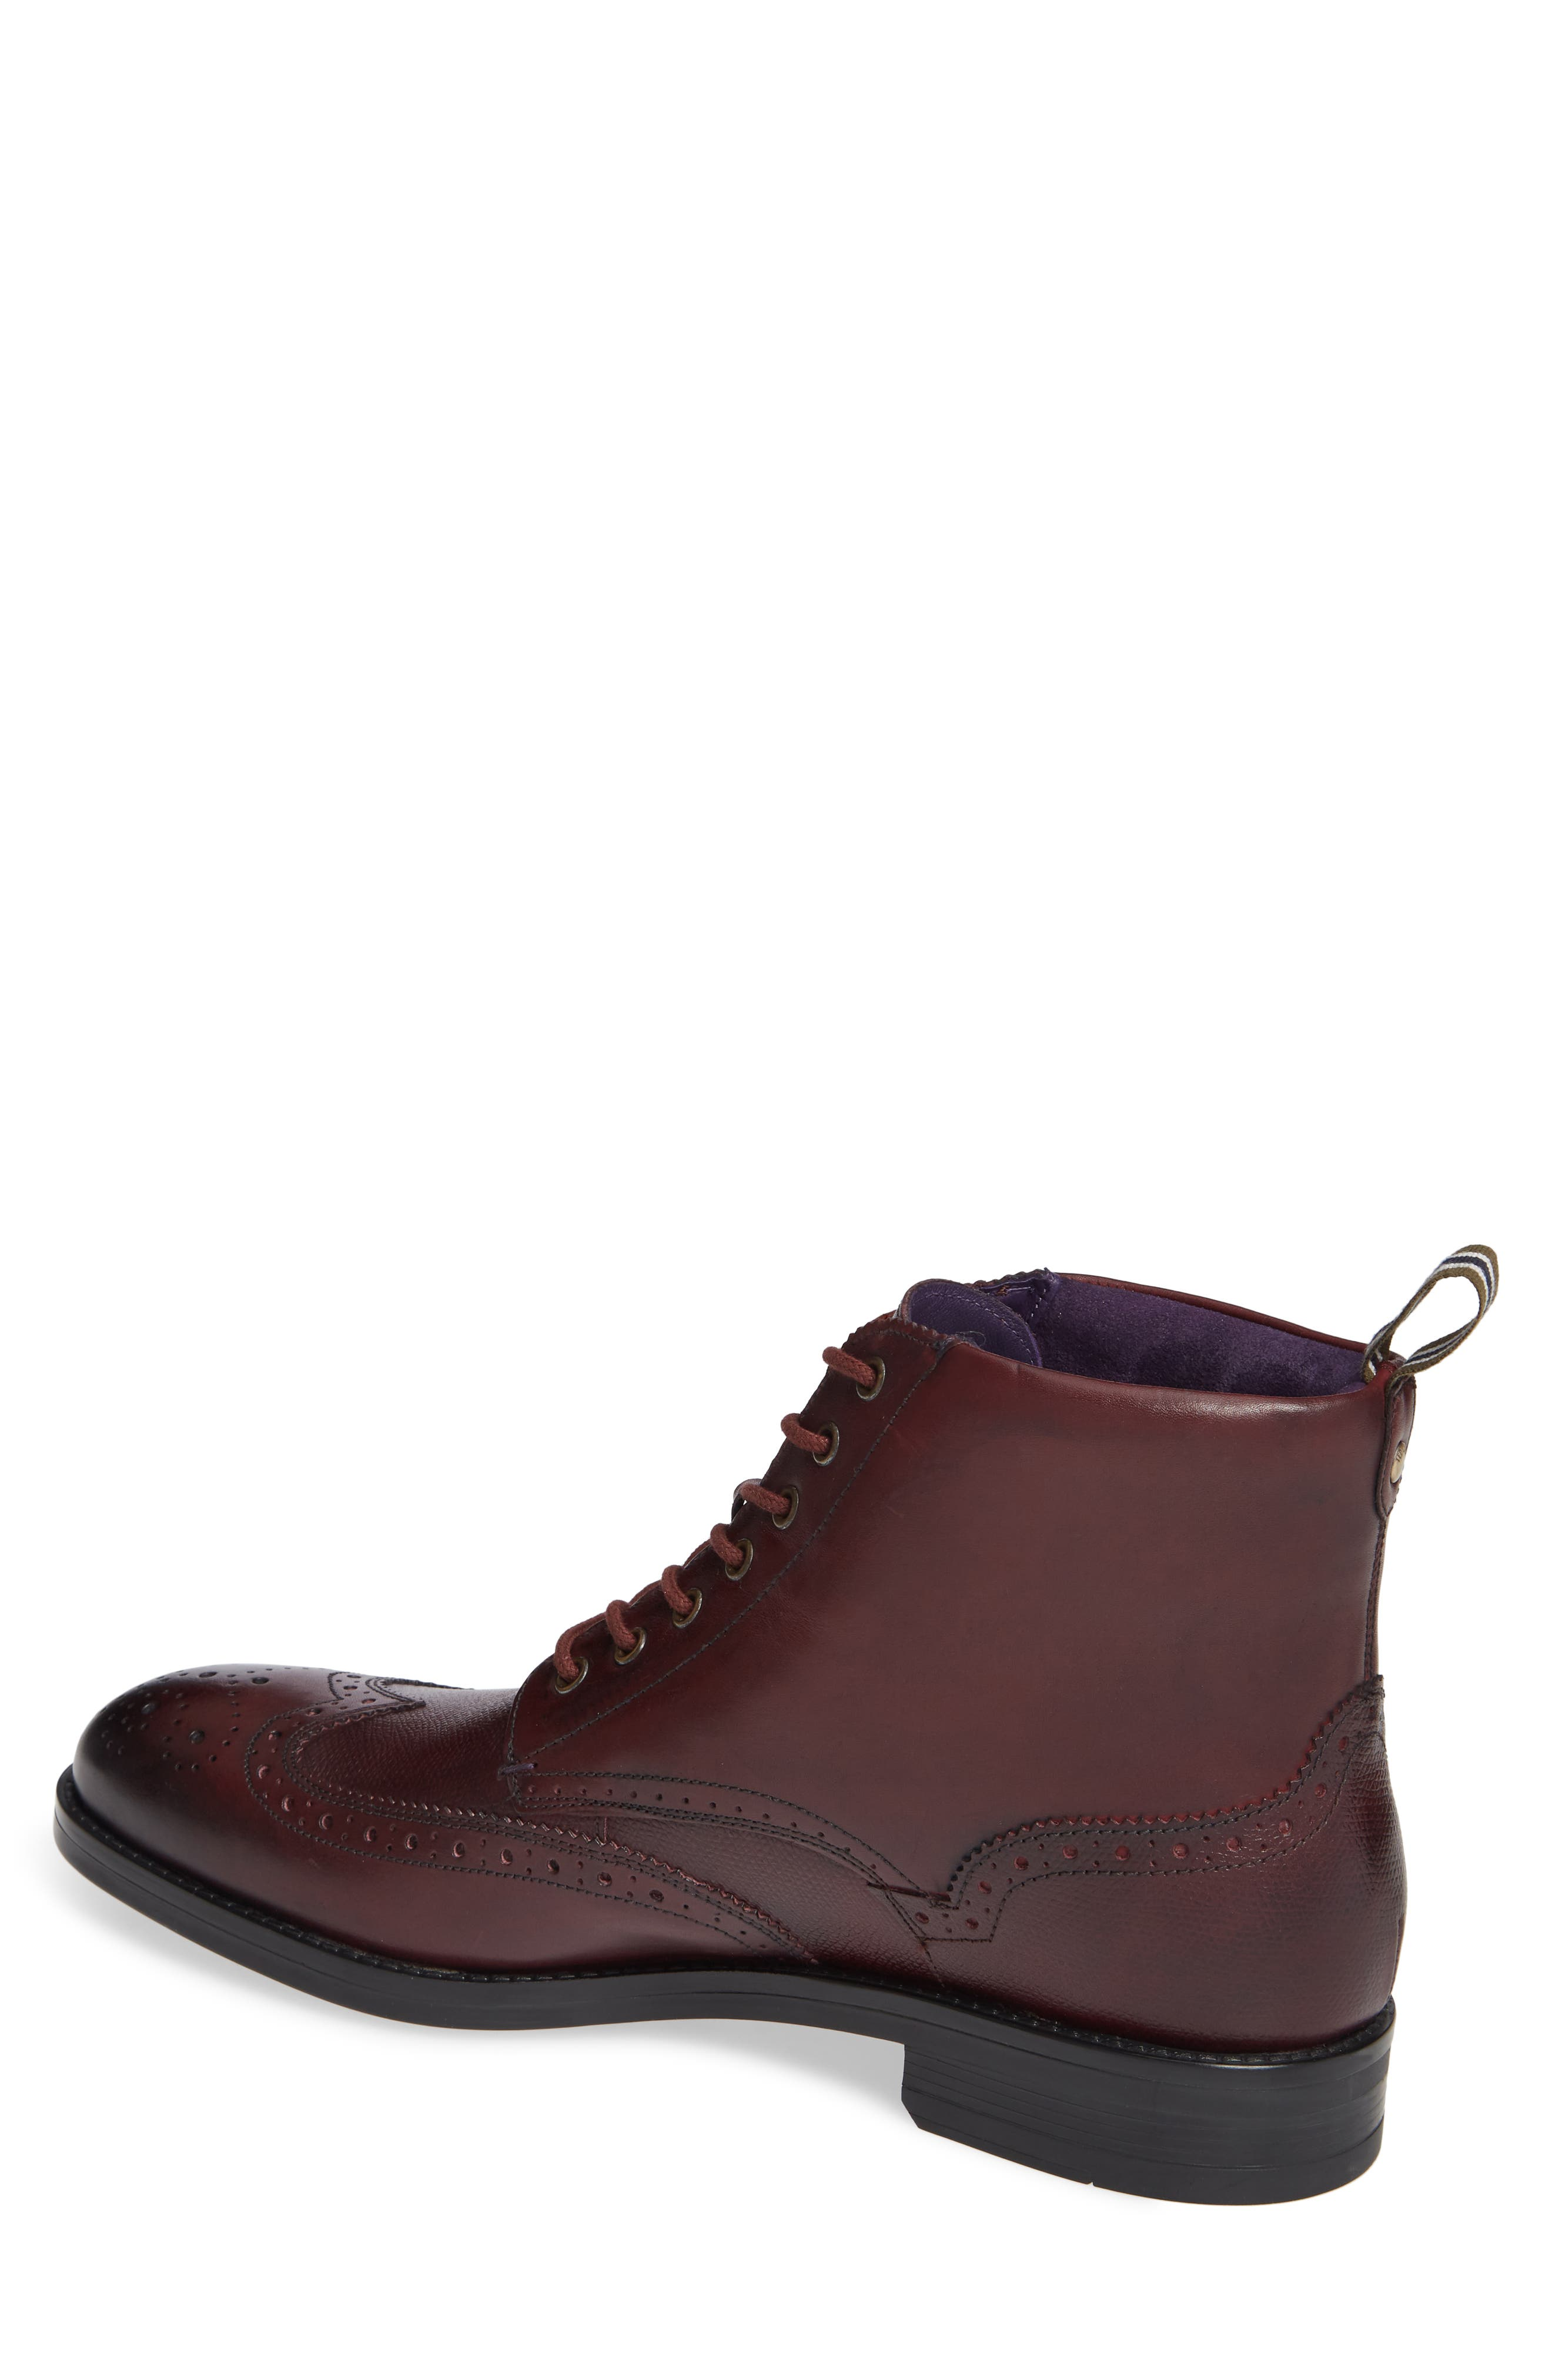 Brogue Ankle Boot,                             Alternate thumbnail 2, color,                             DARK RED LEATHER